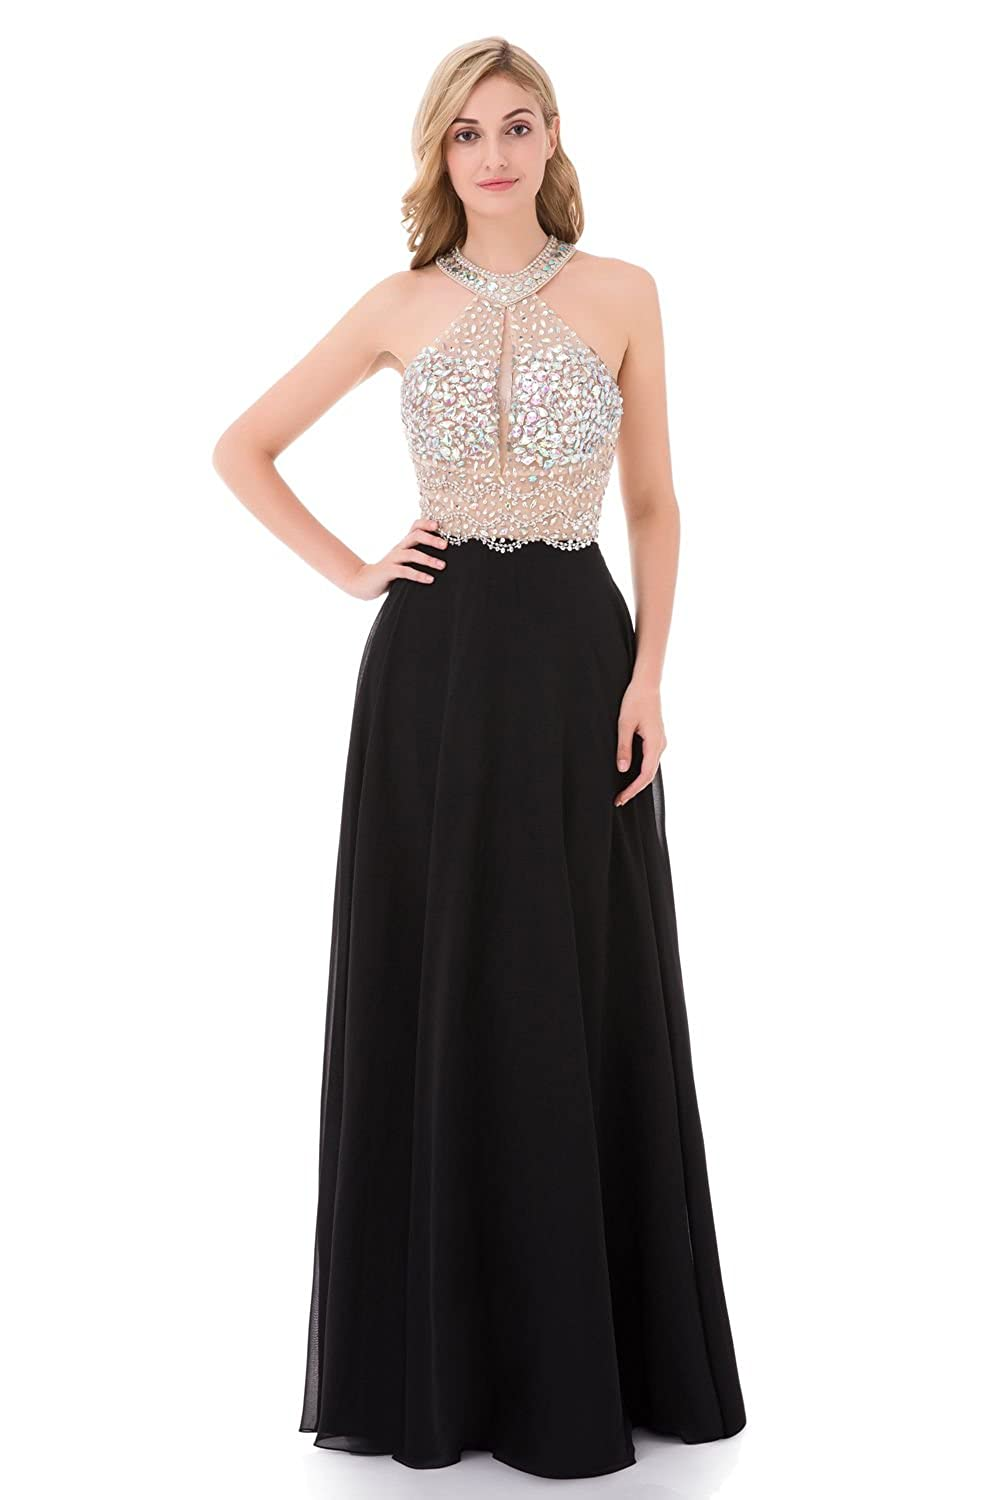 Amazon.com  YuNuo Sparkly Crystal Beading Prom Dresses Long 2019 Sexy Open  Back Party Ball Gown Scoop Bridesmaid Dresses…  Clothing 6f2cdd522052